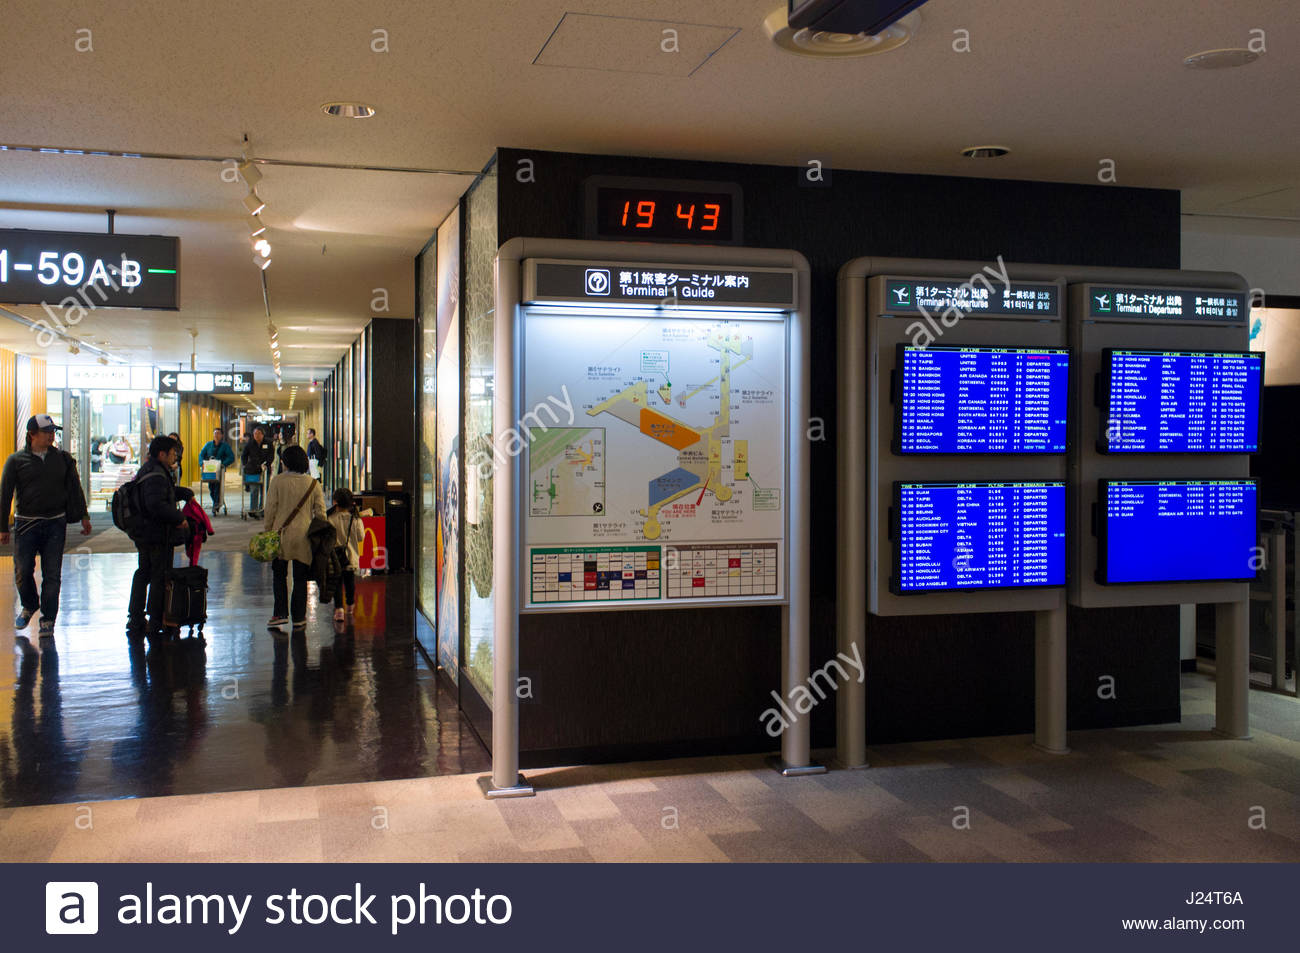 Monitors with flight information, Narita International Airport, NRT, Narita-shi, Chiba, Honshu, Japan - Stock Image